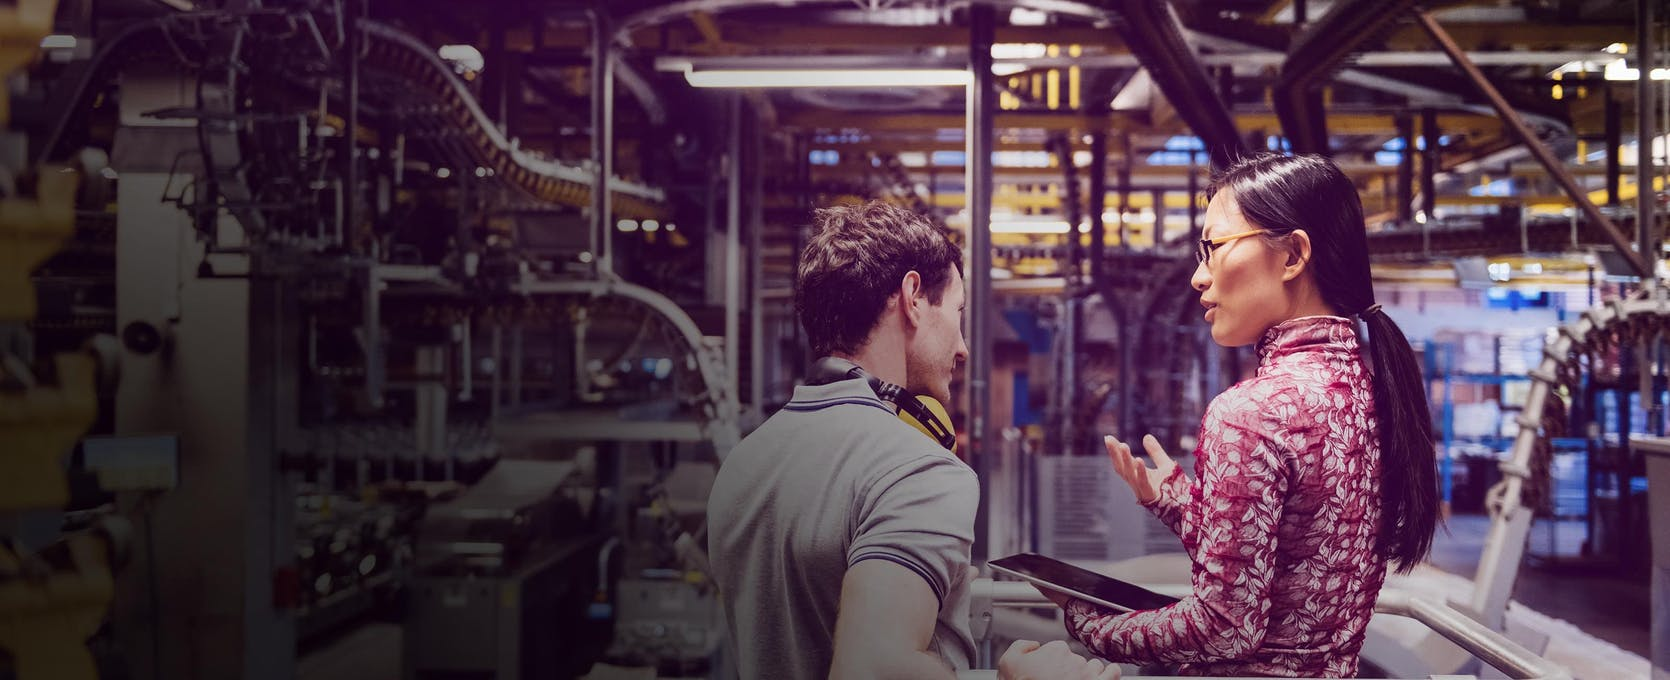 Plant manager uses erp systems to optimize manufacturing operations